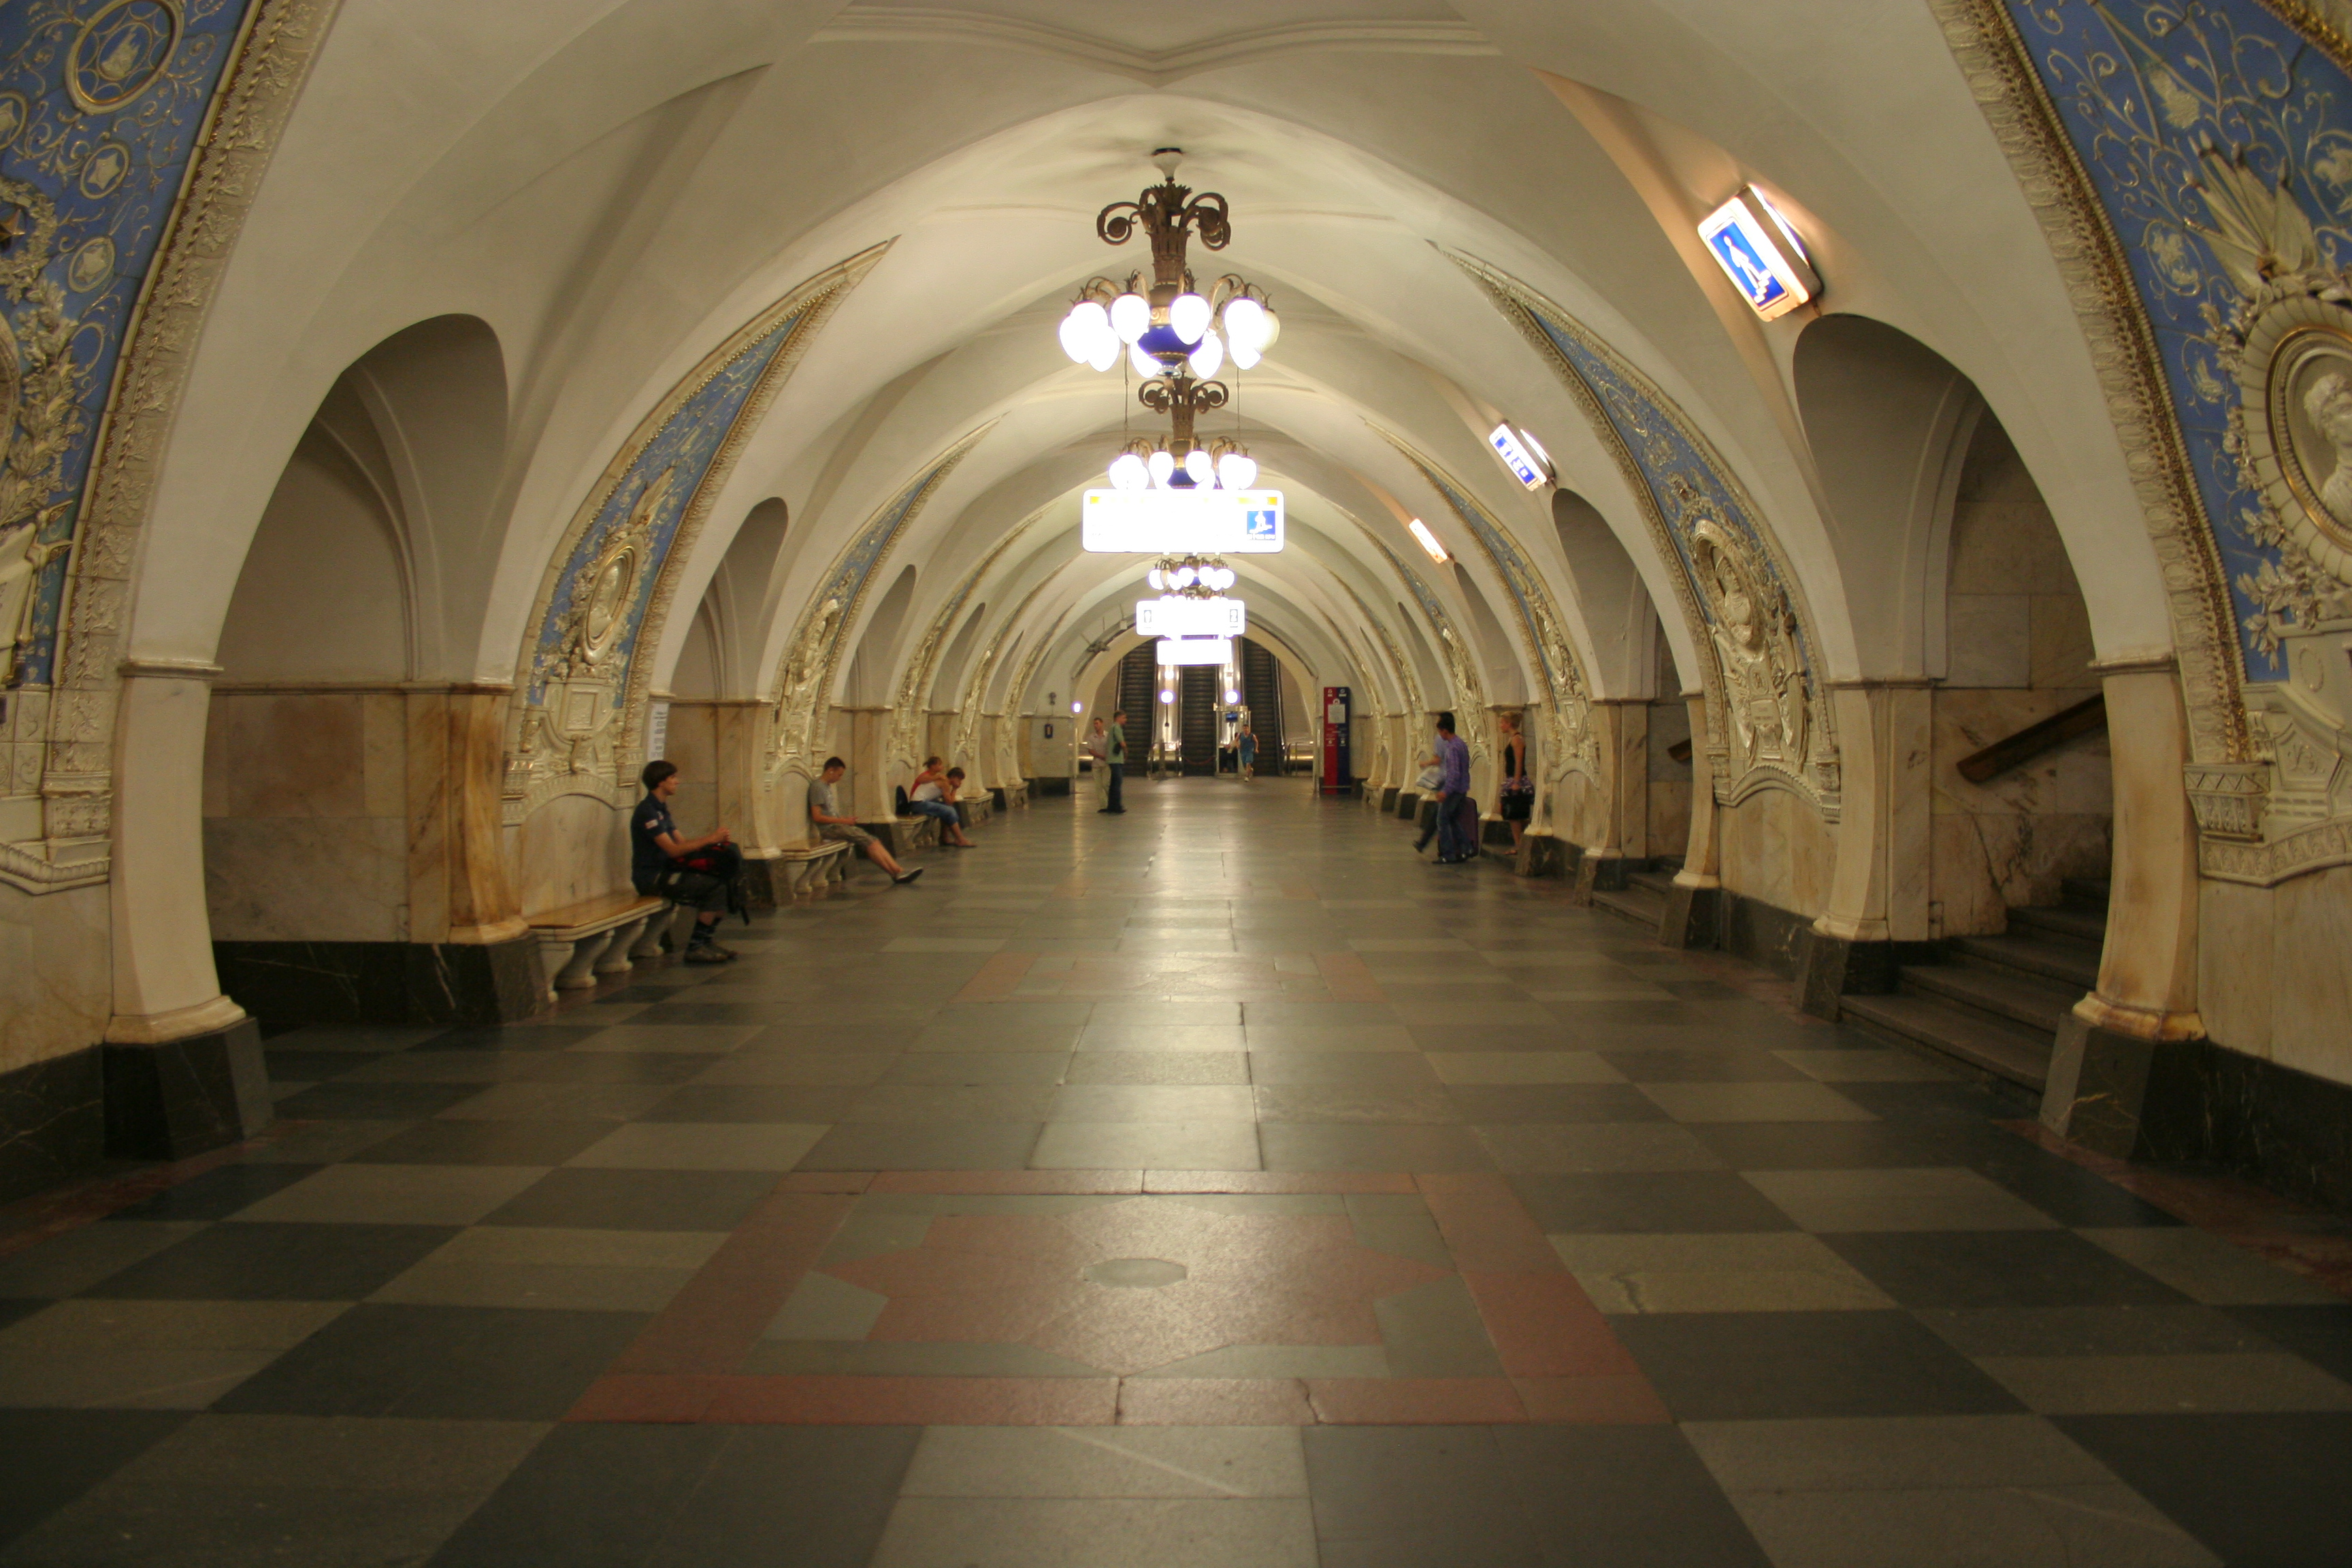 Metro Taganskaya: from the history of the Moscow metro